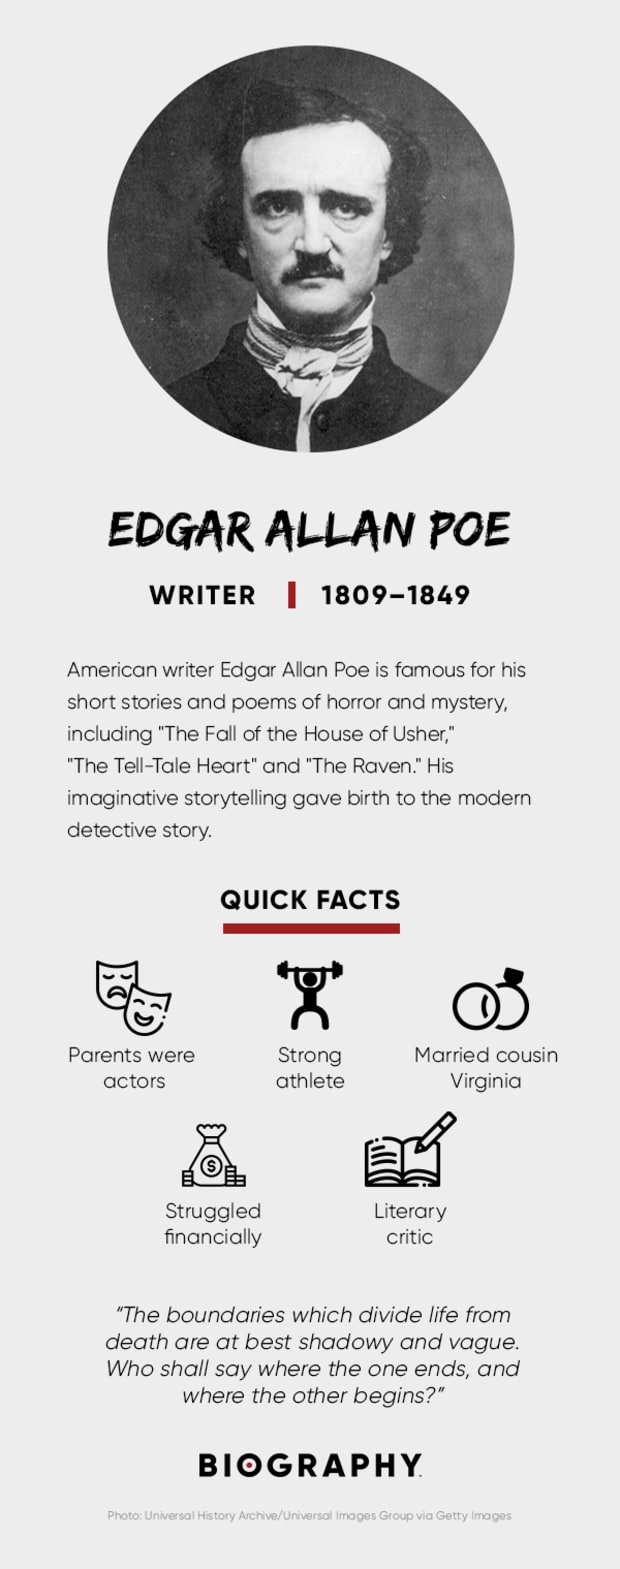 Edgar Allan Poe - Poems, Quotes & Books - Biography